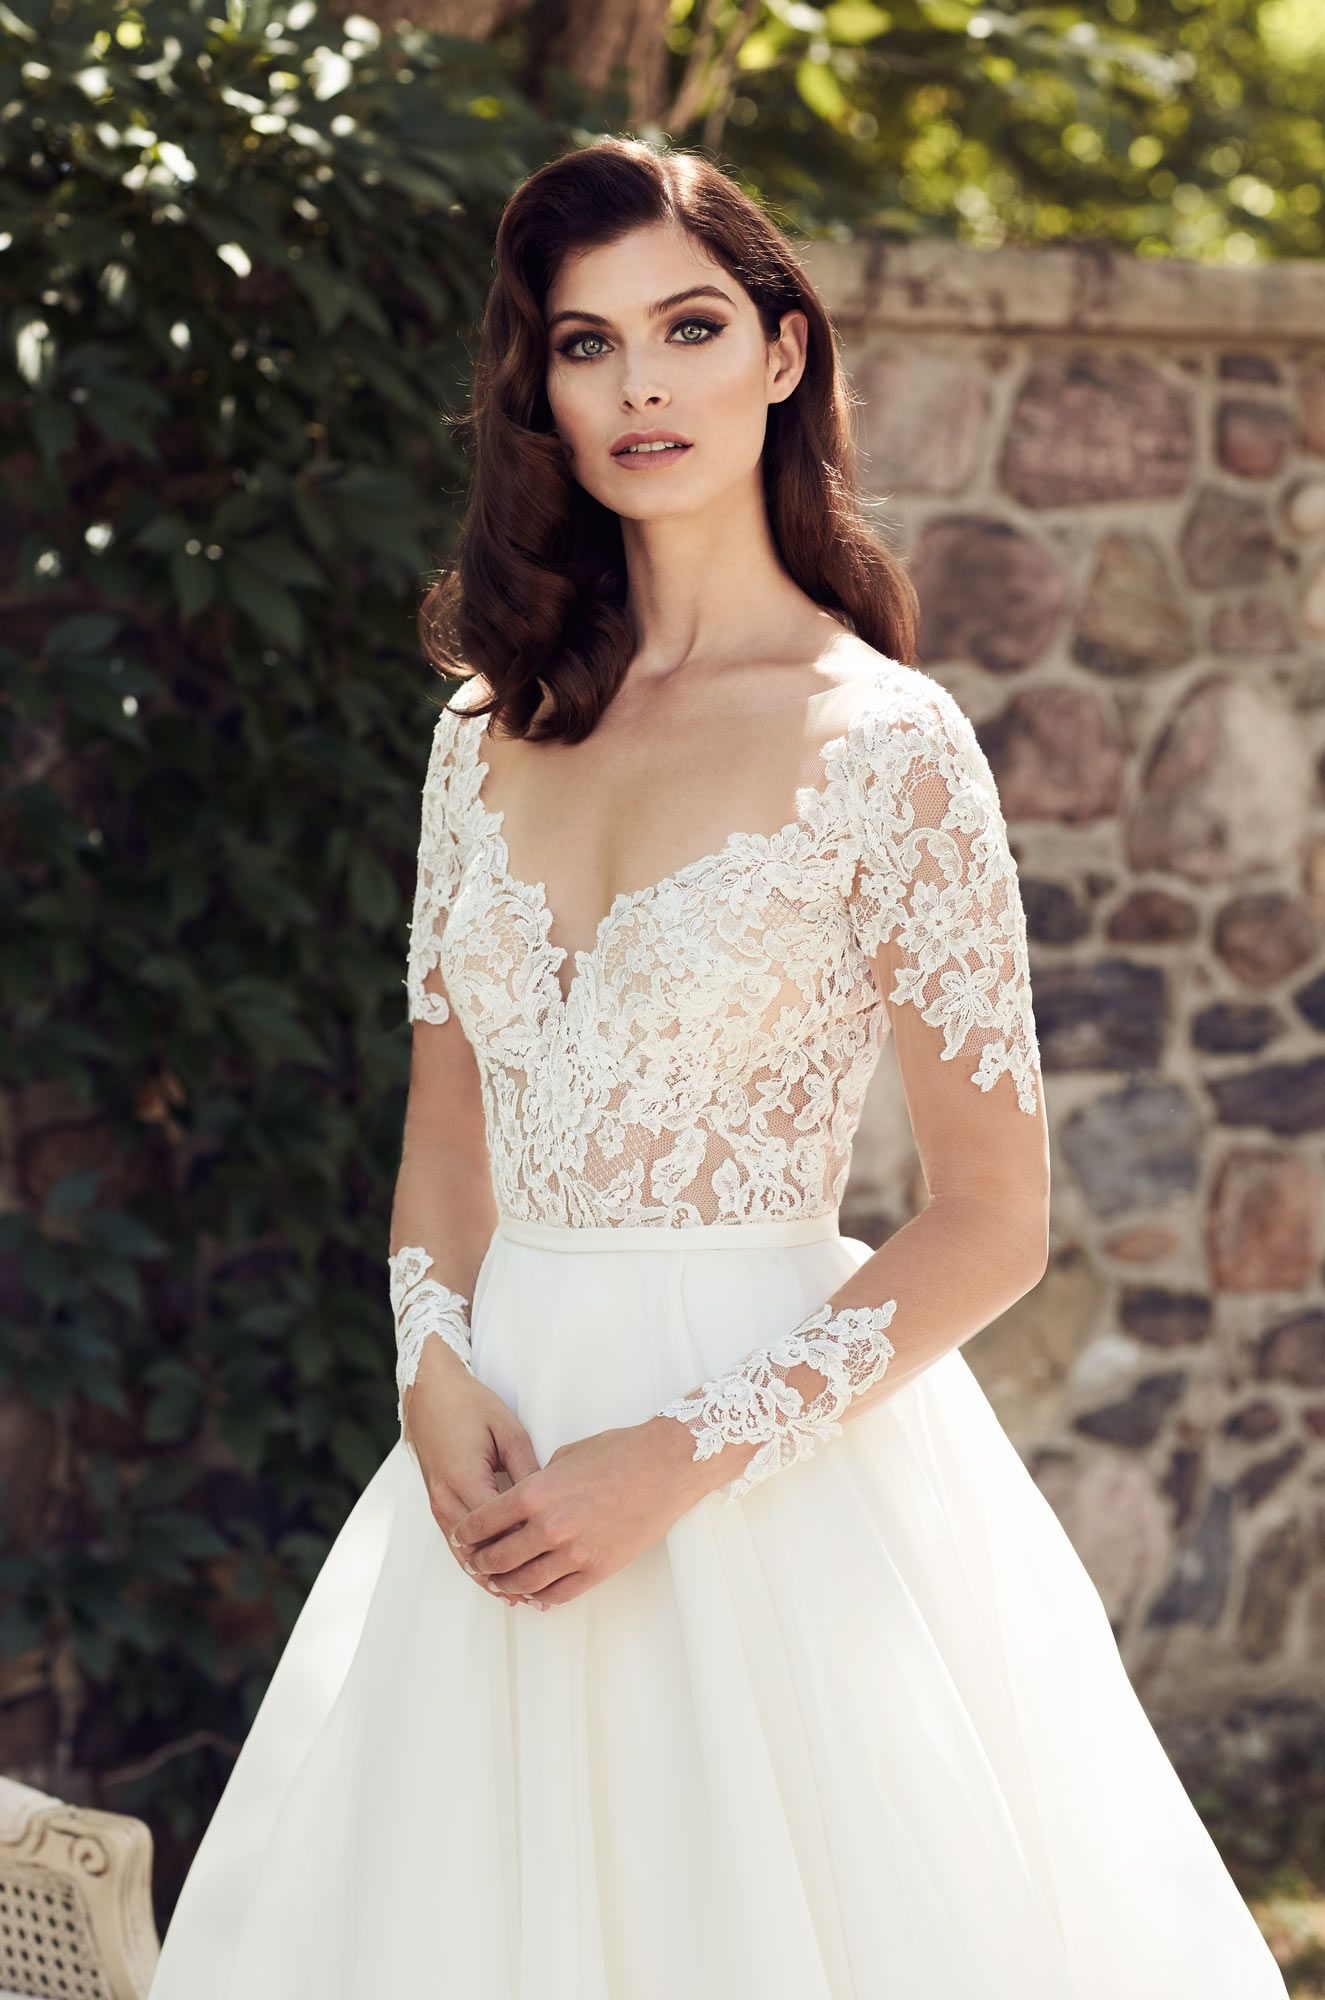 Palomablancawed style nude tulle bodice with long sleeves